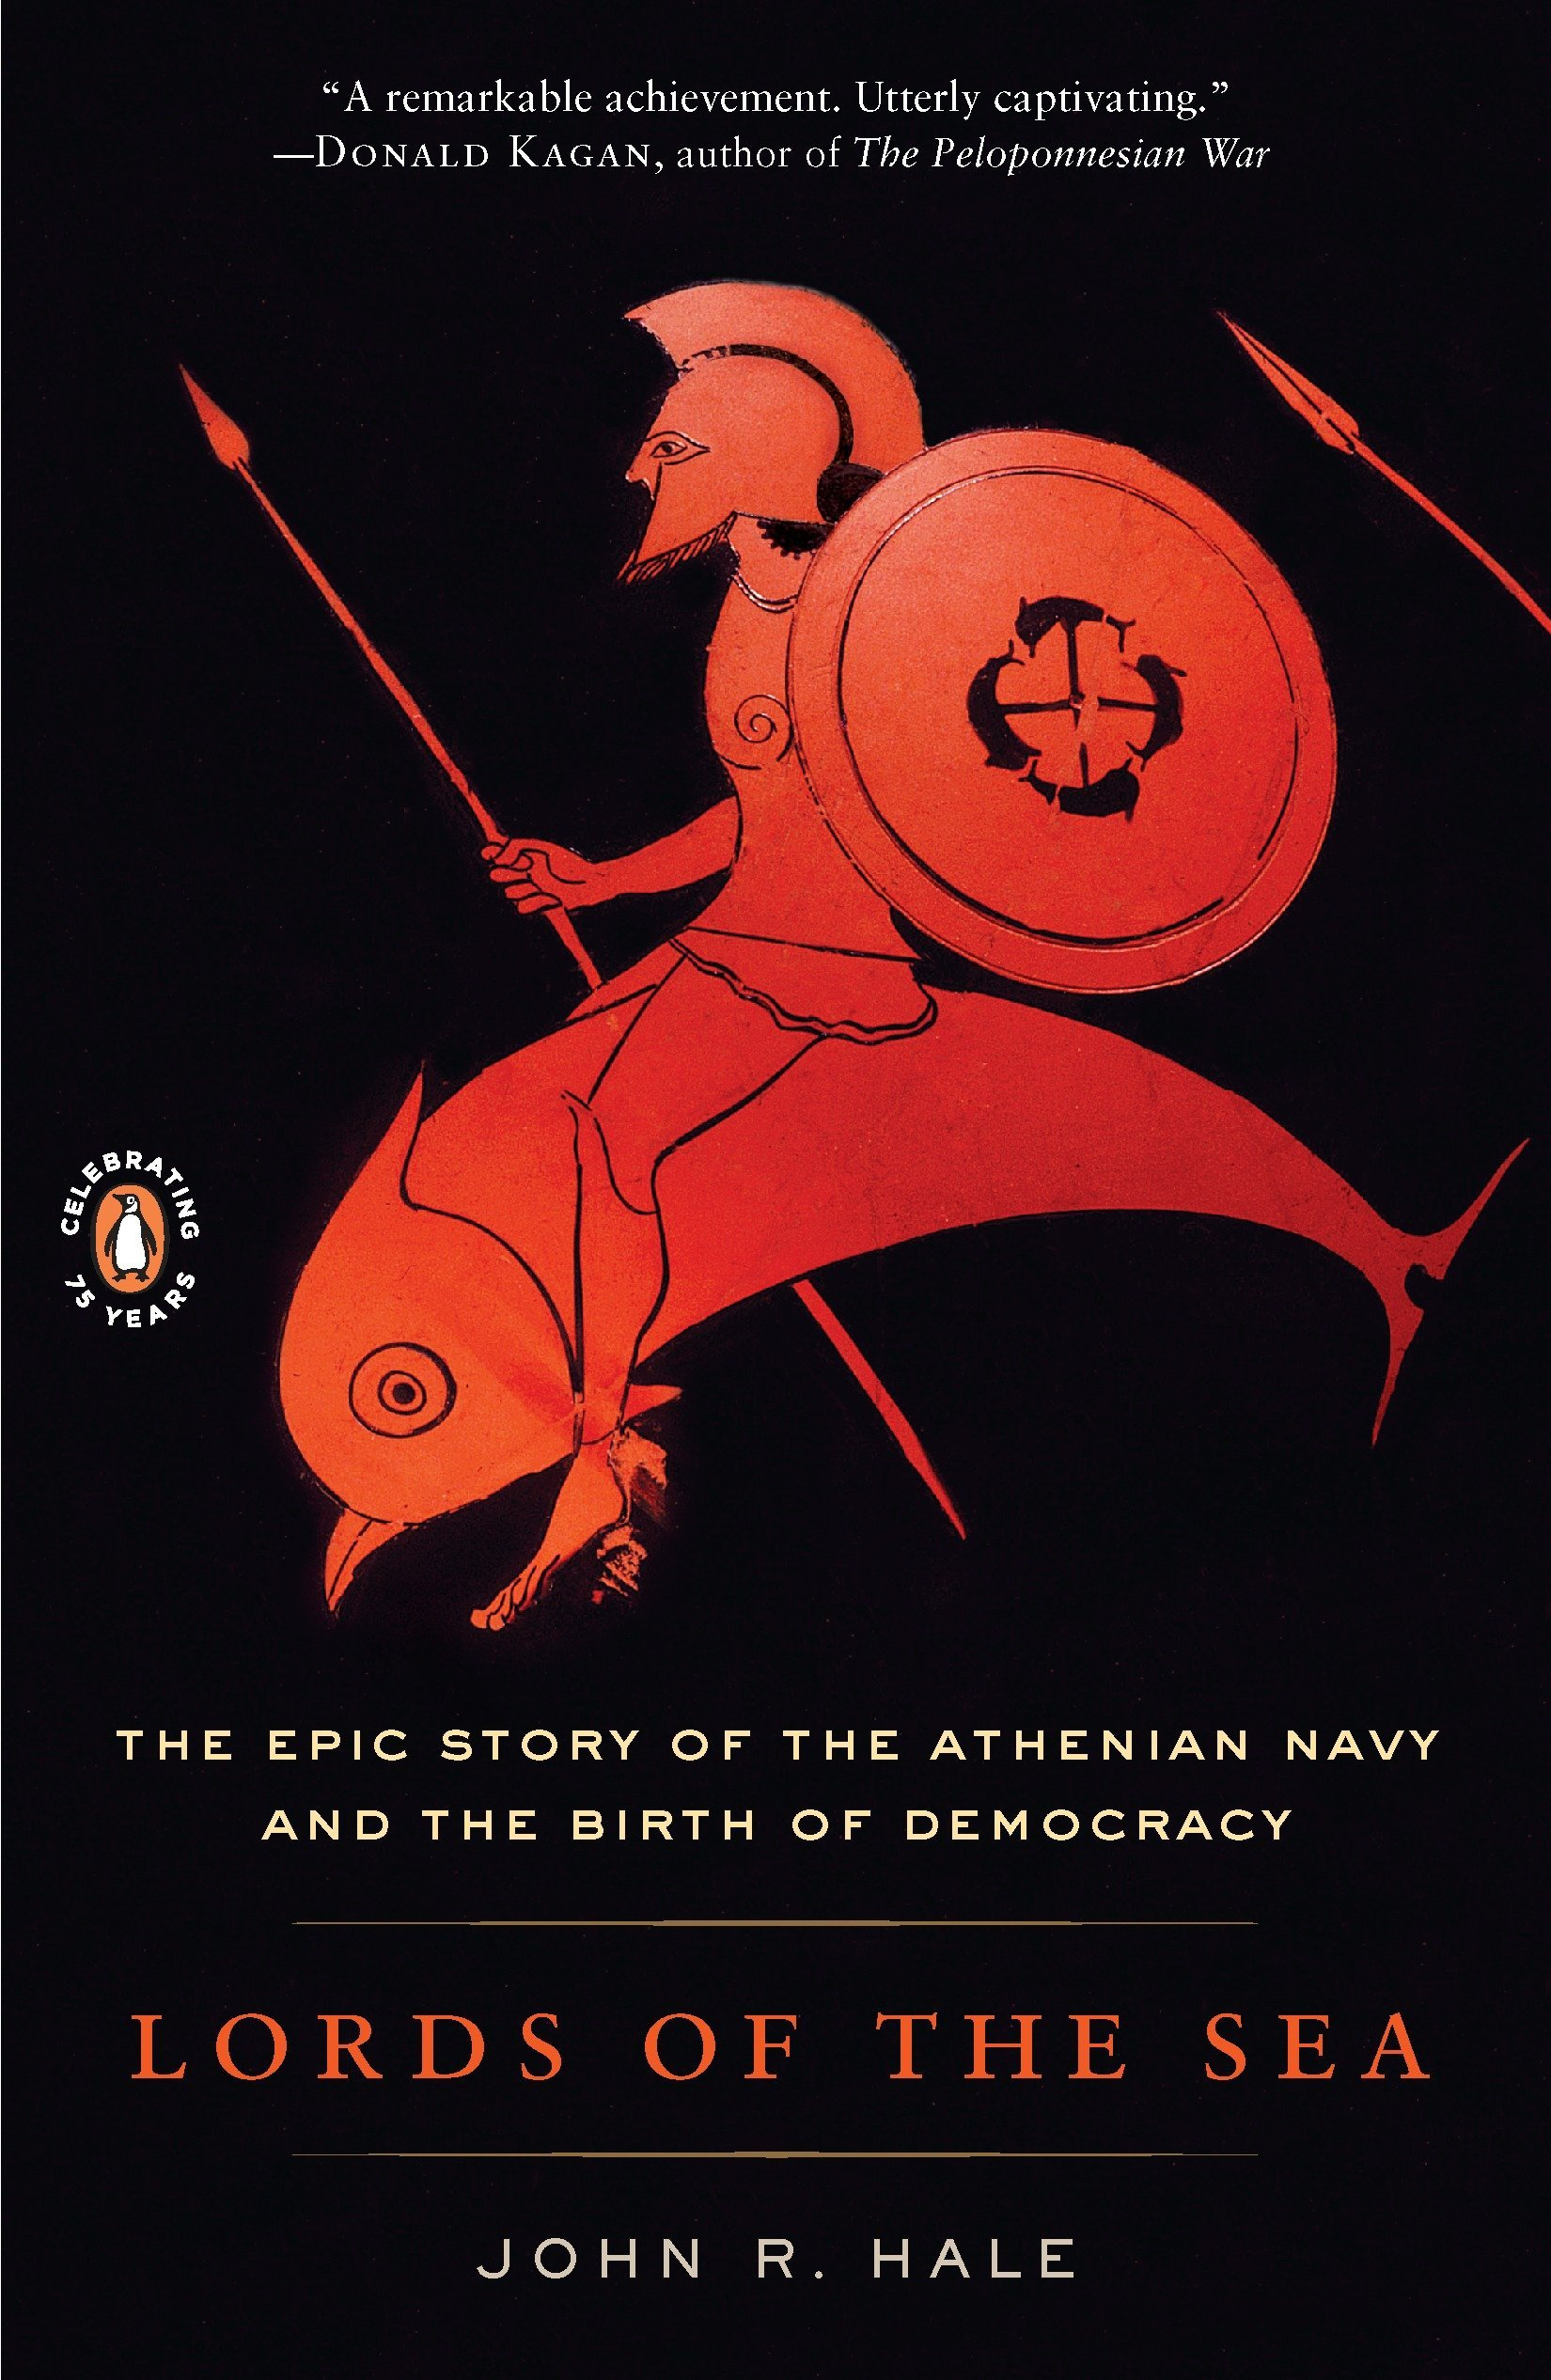 Download Lords of the Sea: The Epic Story of the Athenian Navy and the Birth of Democracy PDF